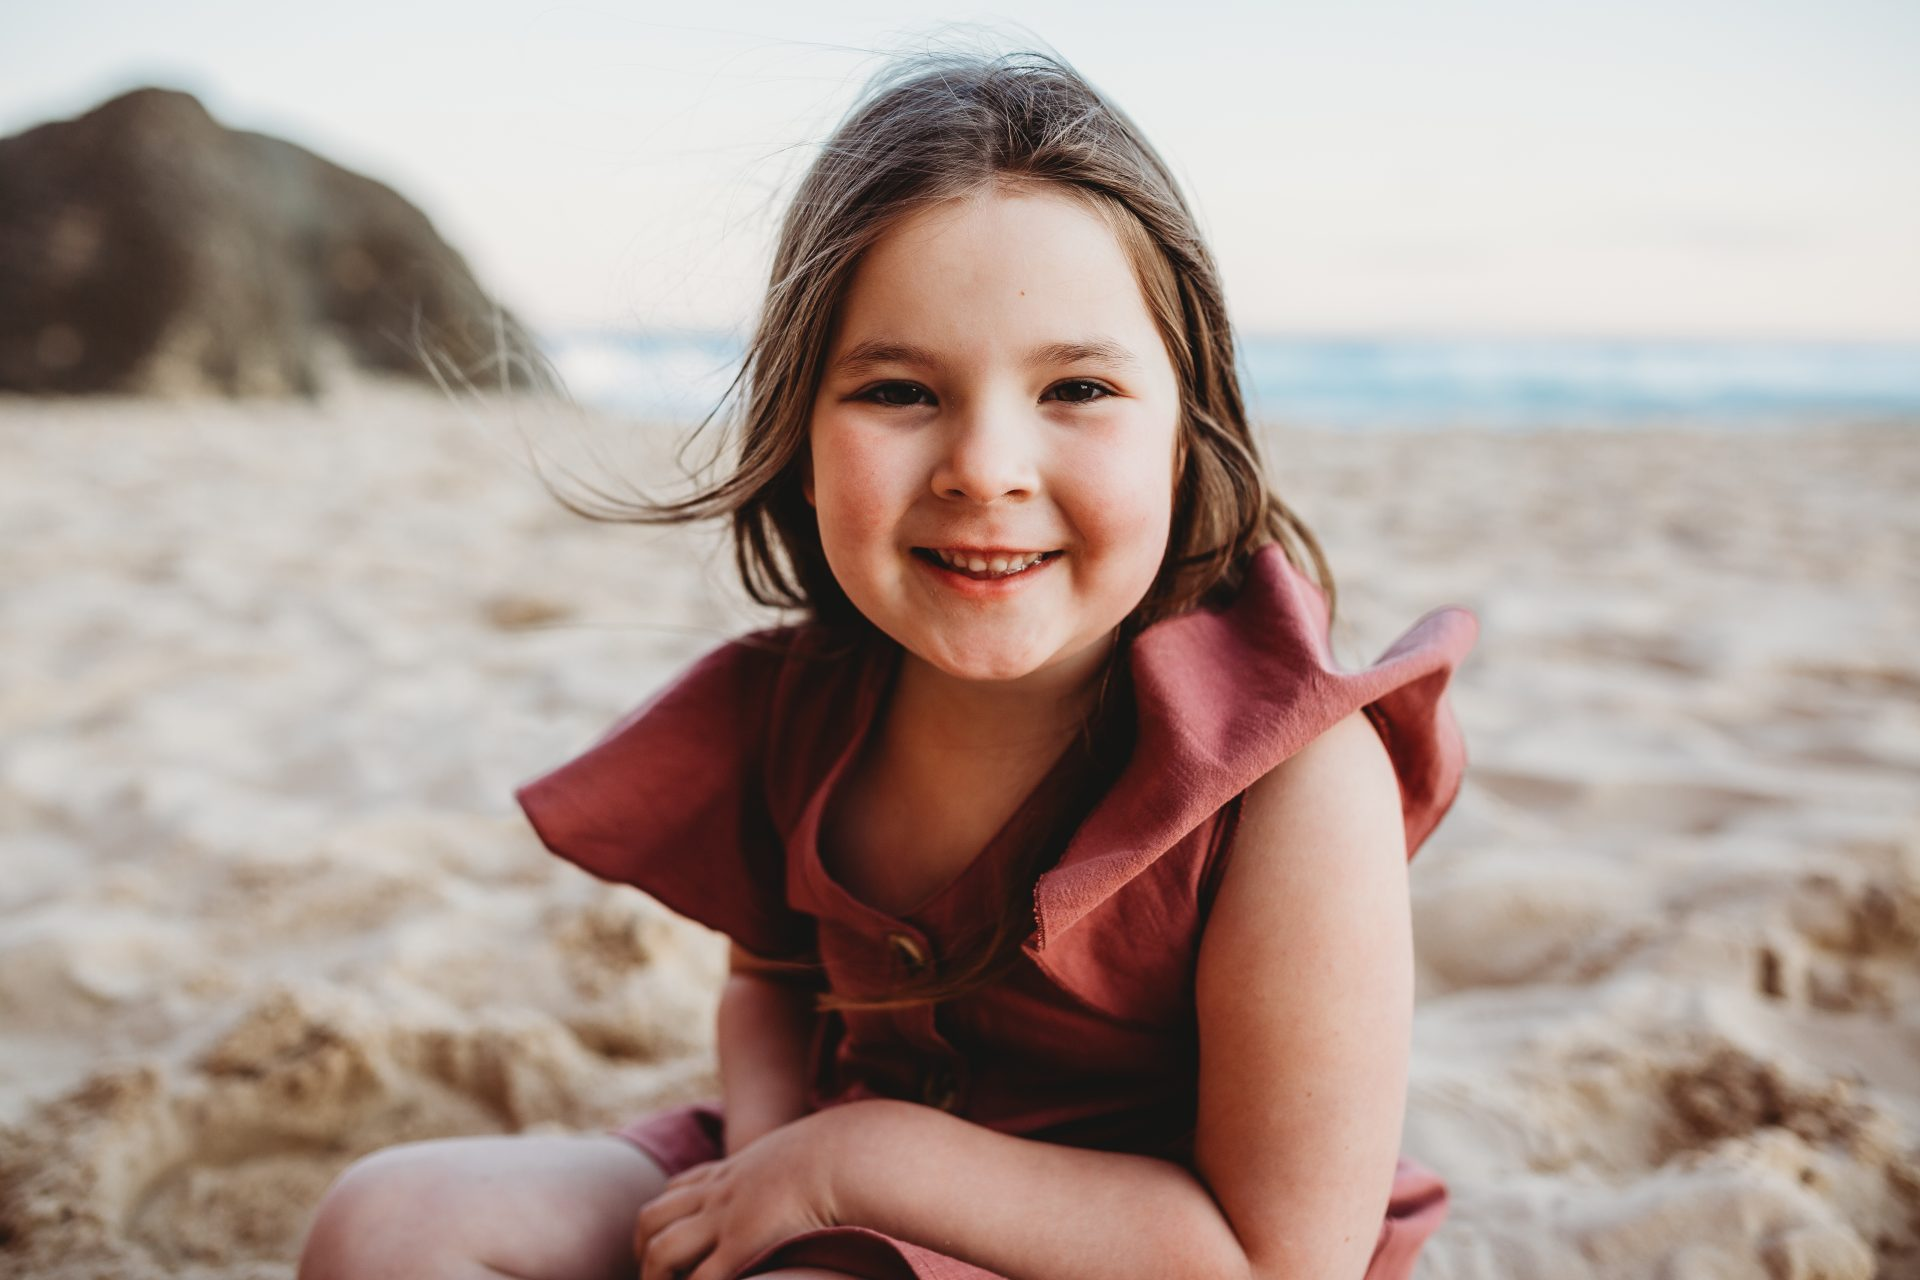 Little girl wearing pink dress, smiling at the camera while sitting on the beach